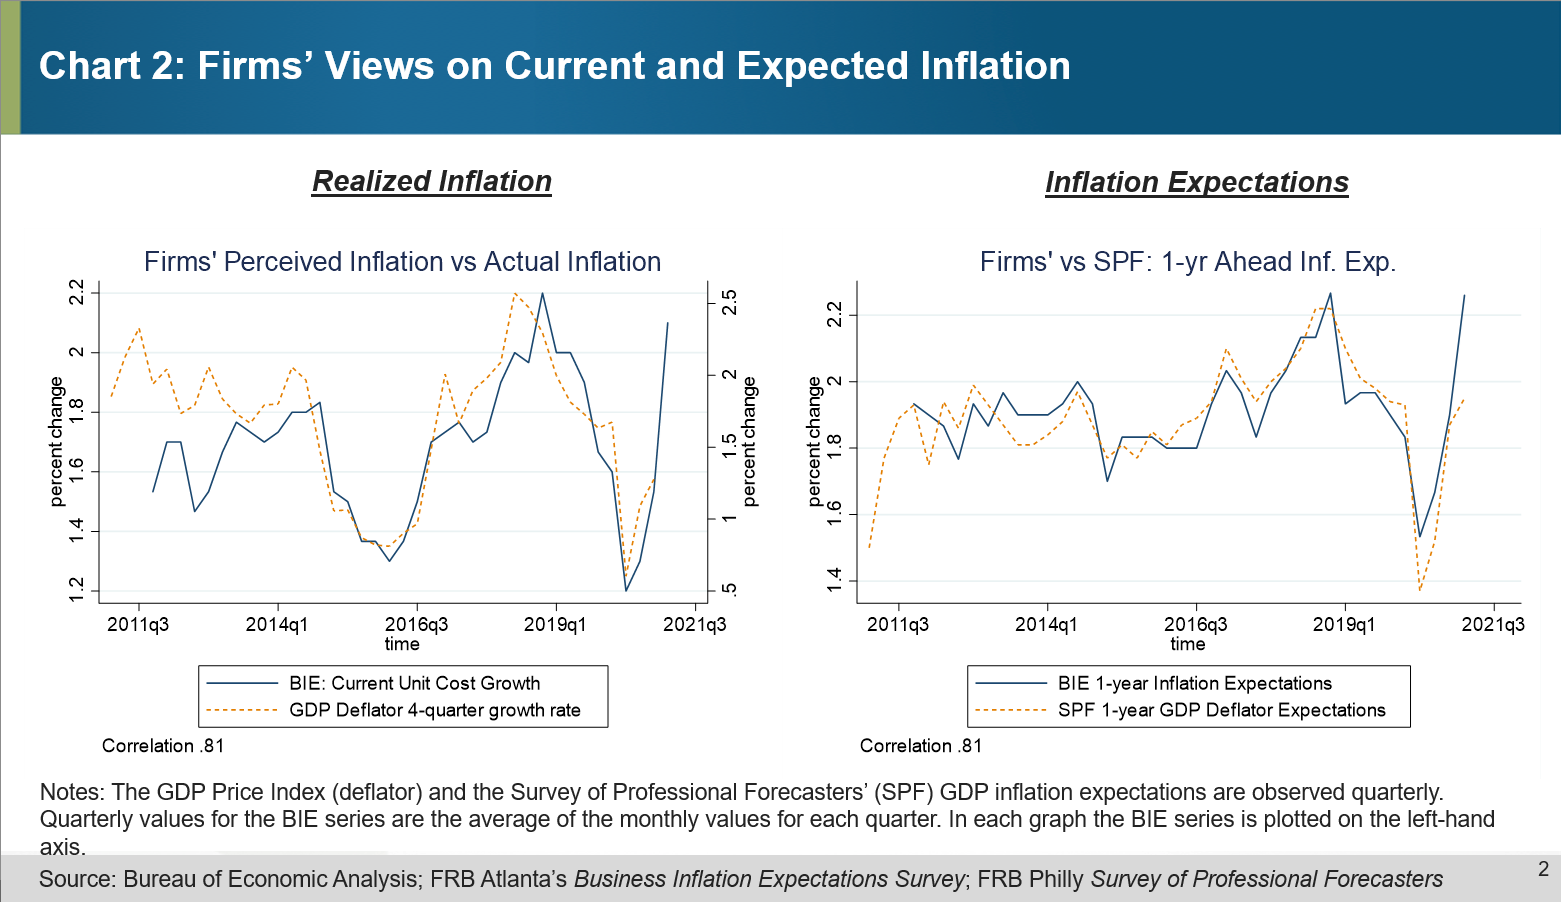 Chart 2 of 4: Firms' Views on Current and Expected Inflation